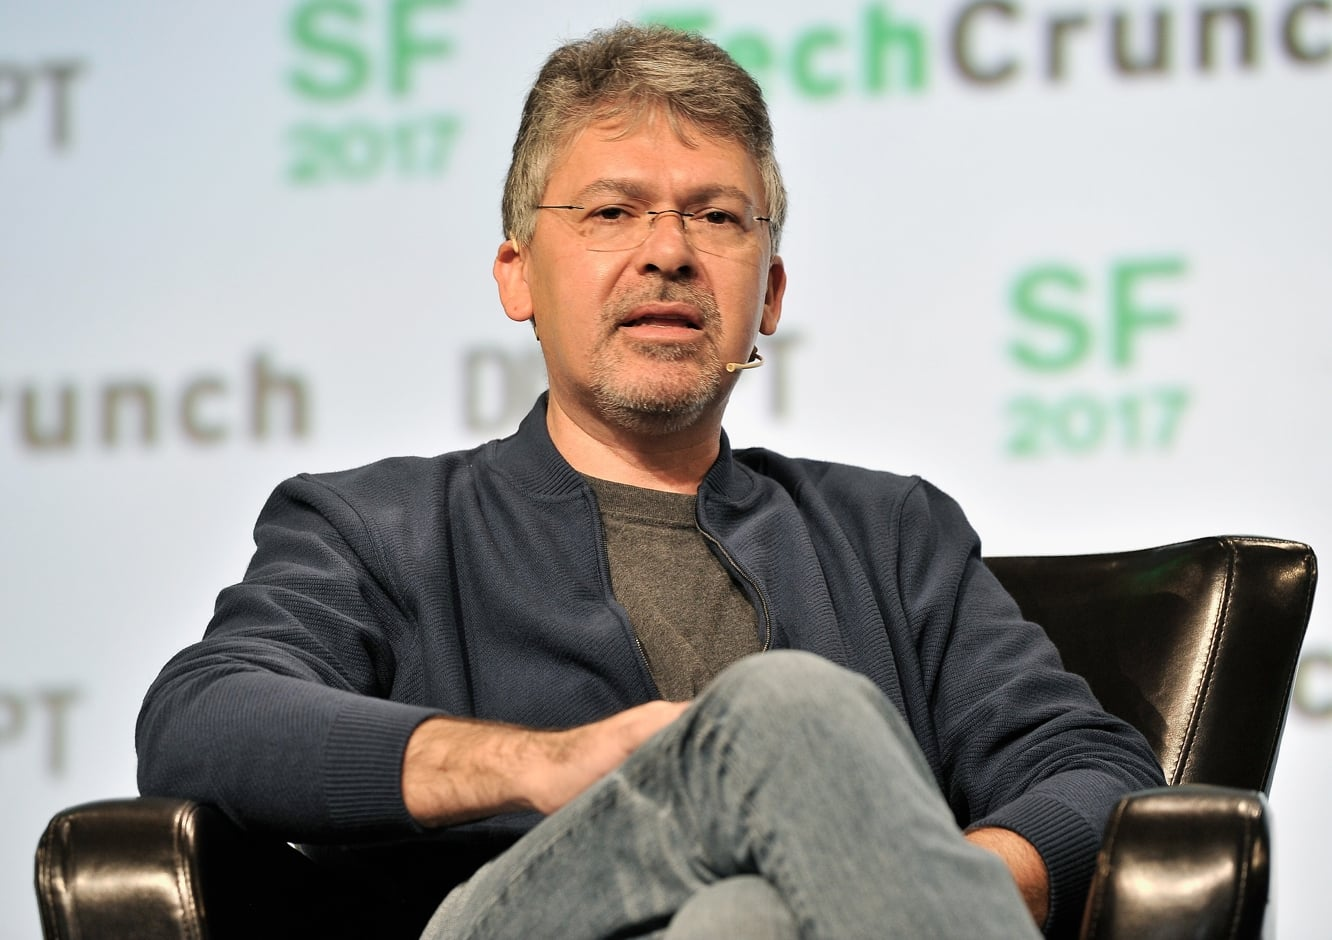 Google's chief of search and artificial intelligence joins Apple